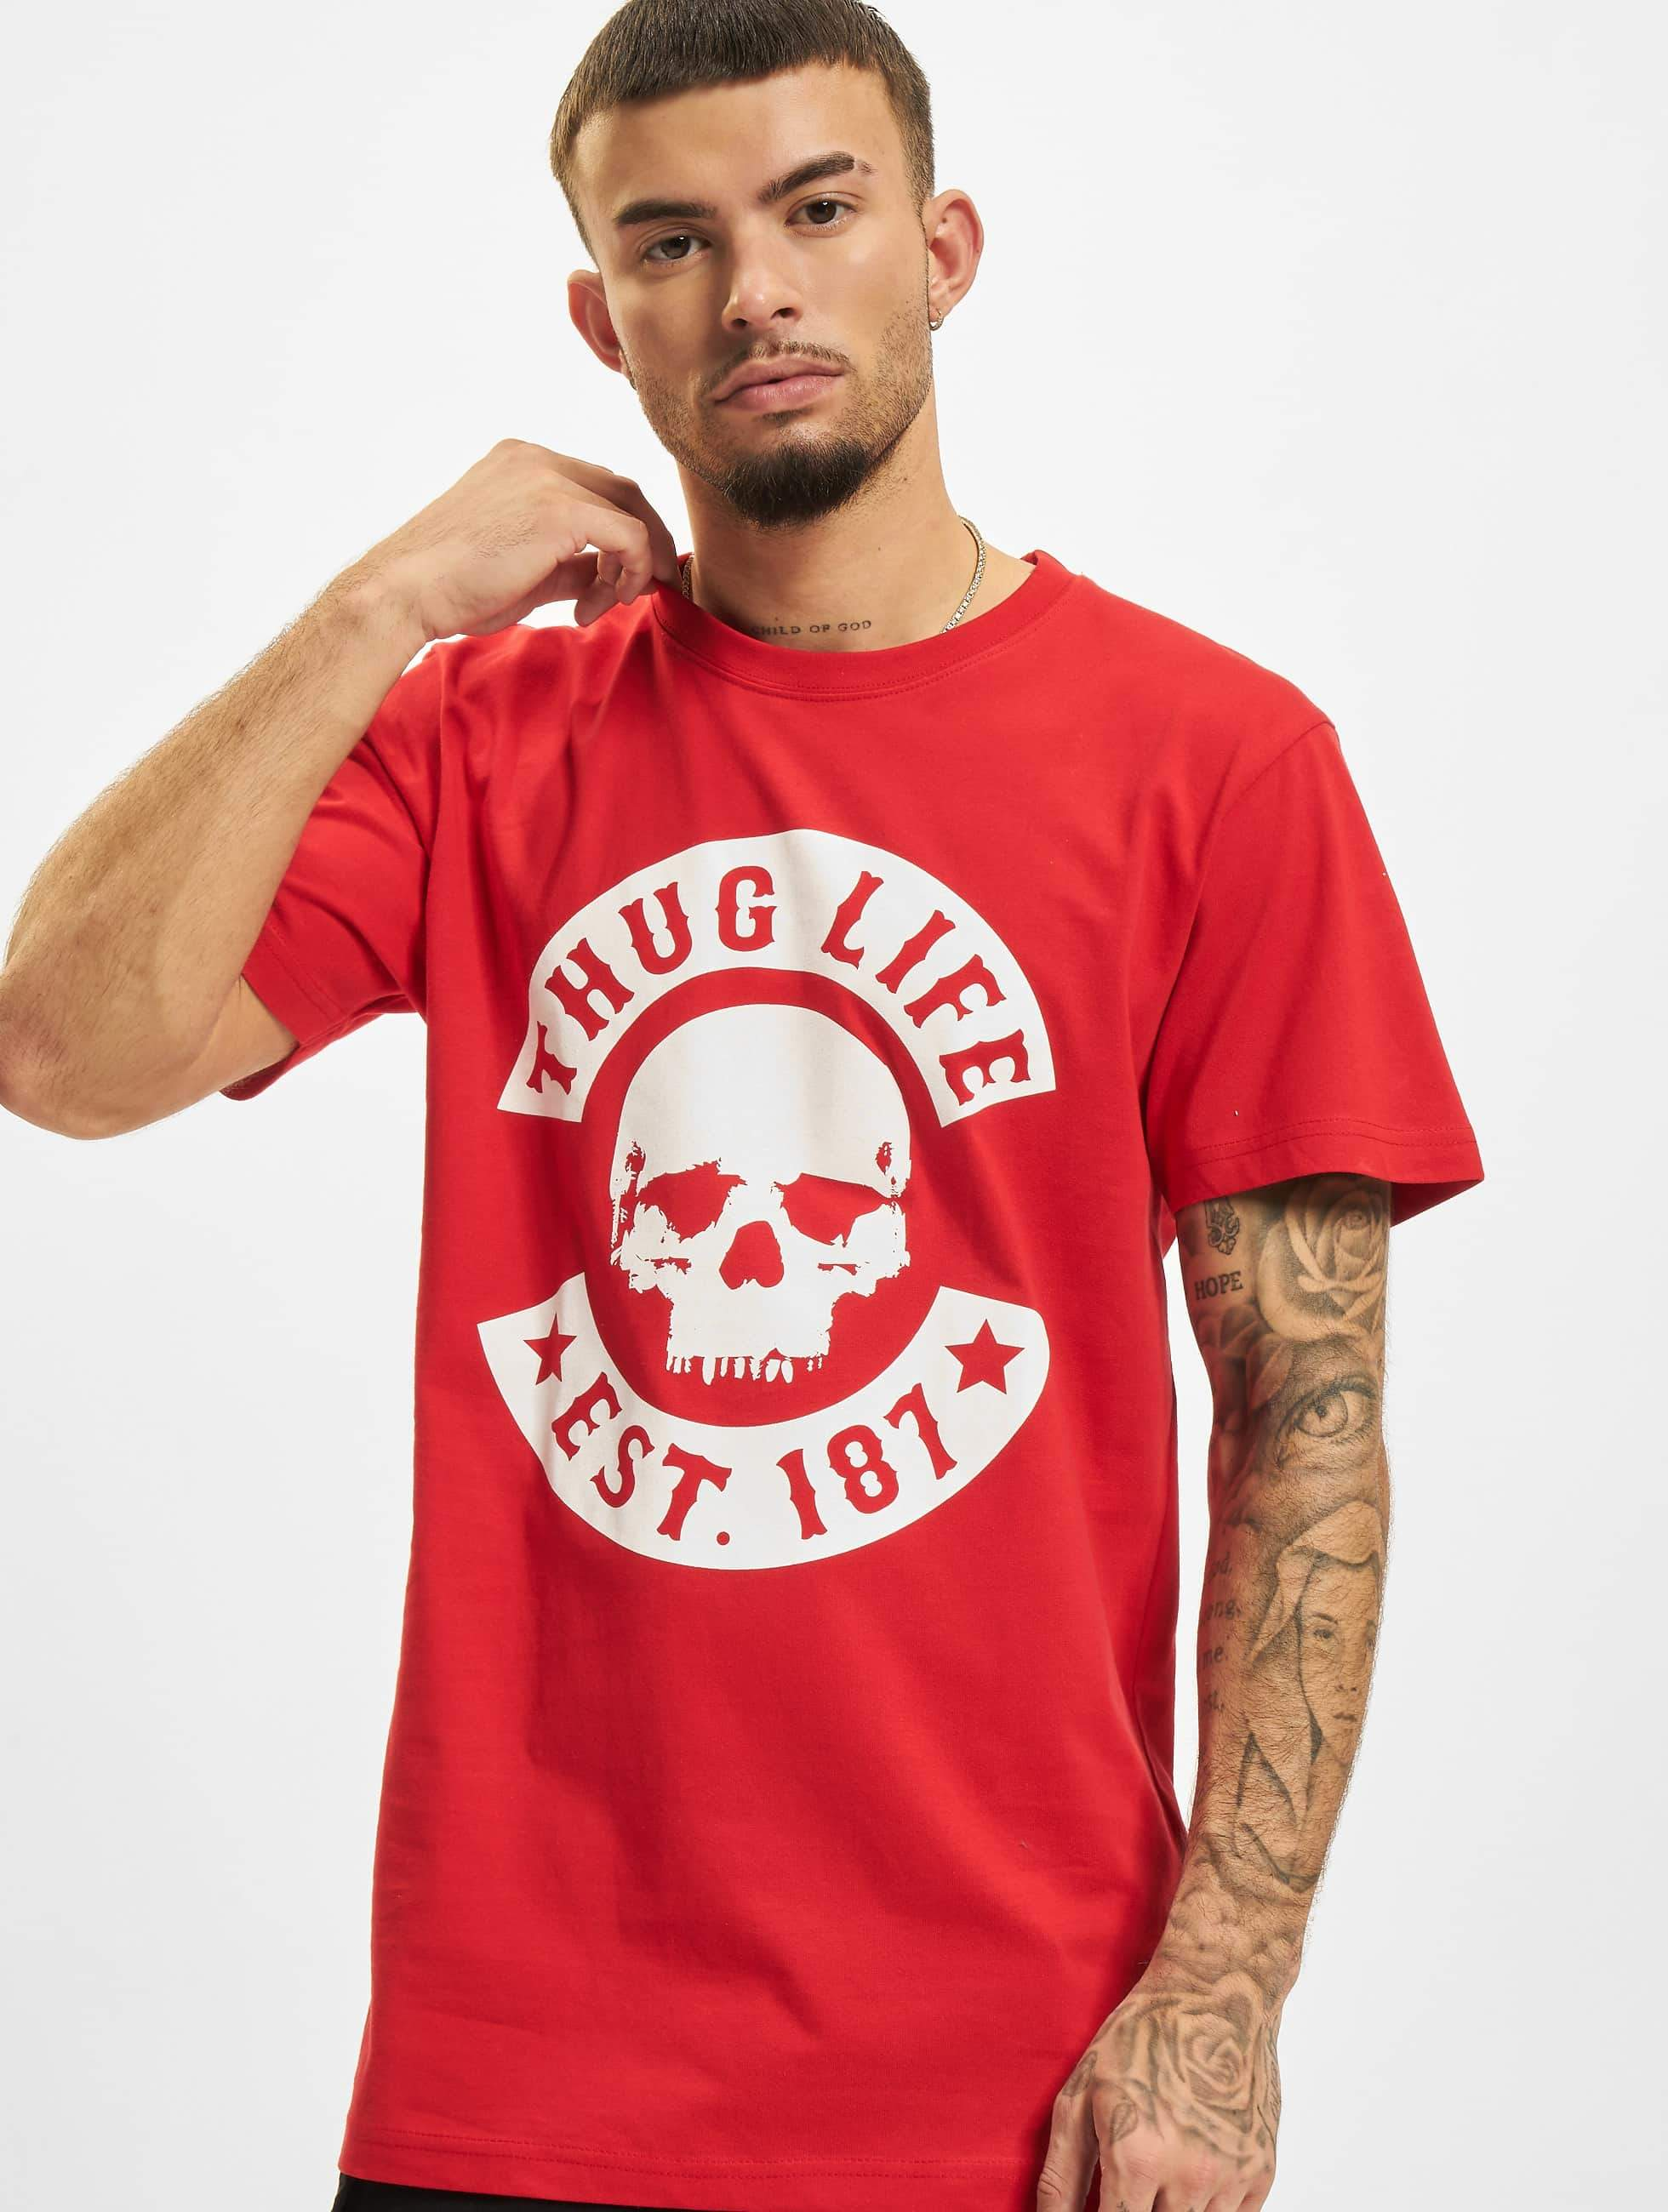 Thug Life / T-Shirt B.Skull in red 5XL